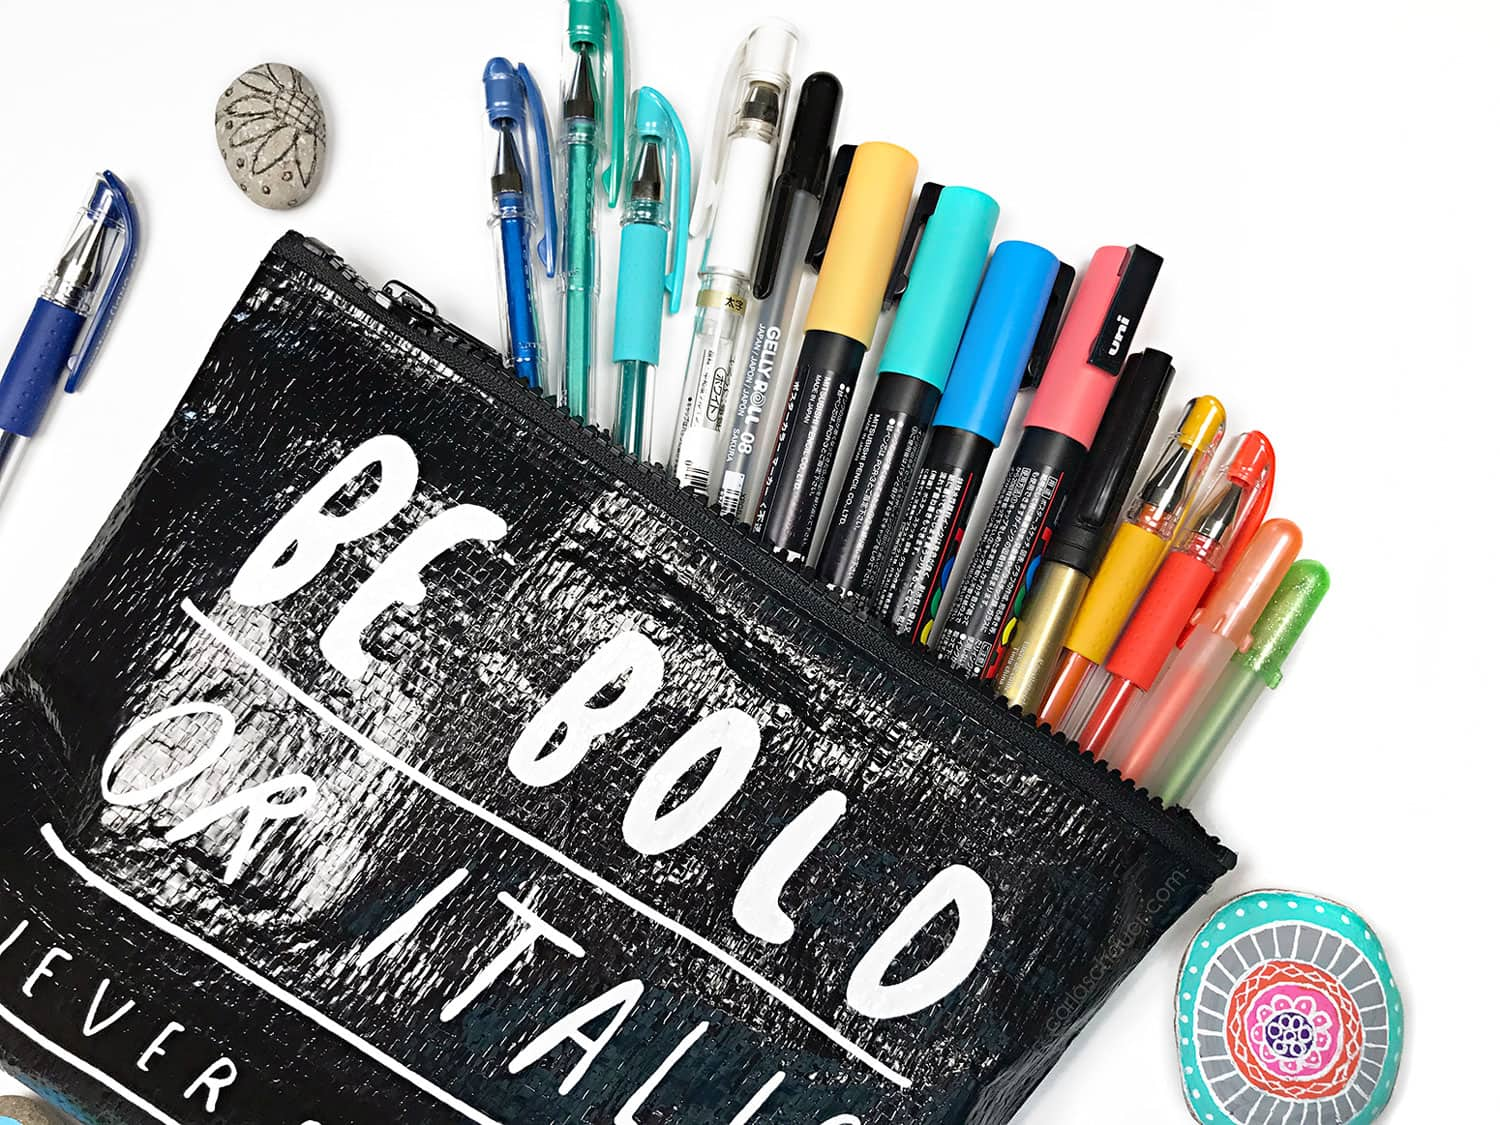 Black pouch of paint markers and gel pens, with painted rocks on white background.